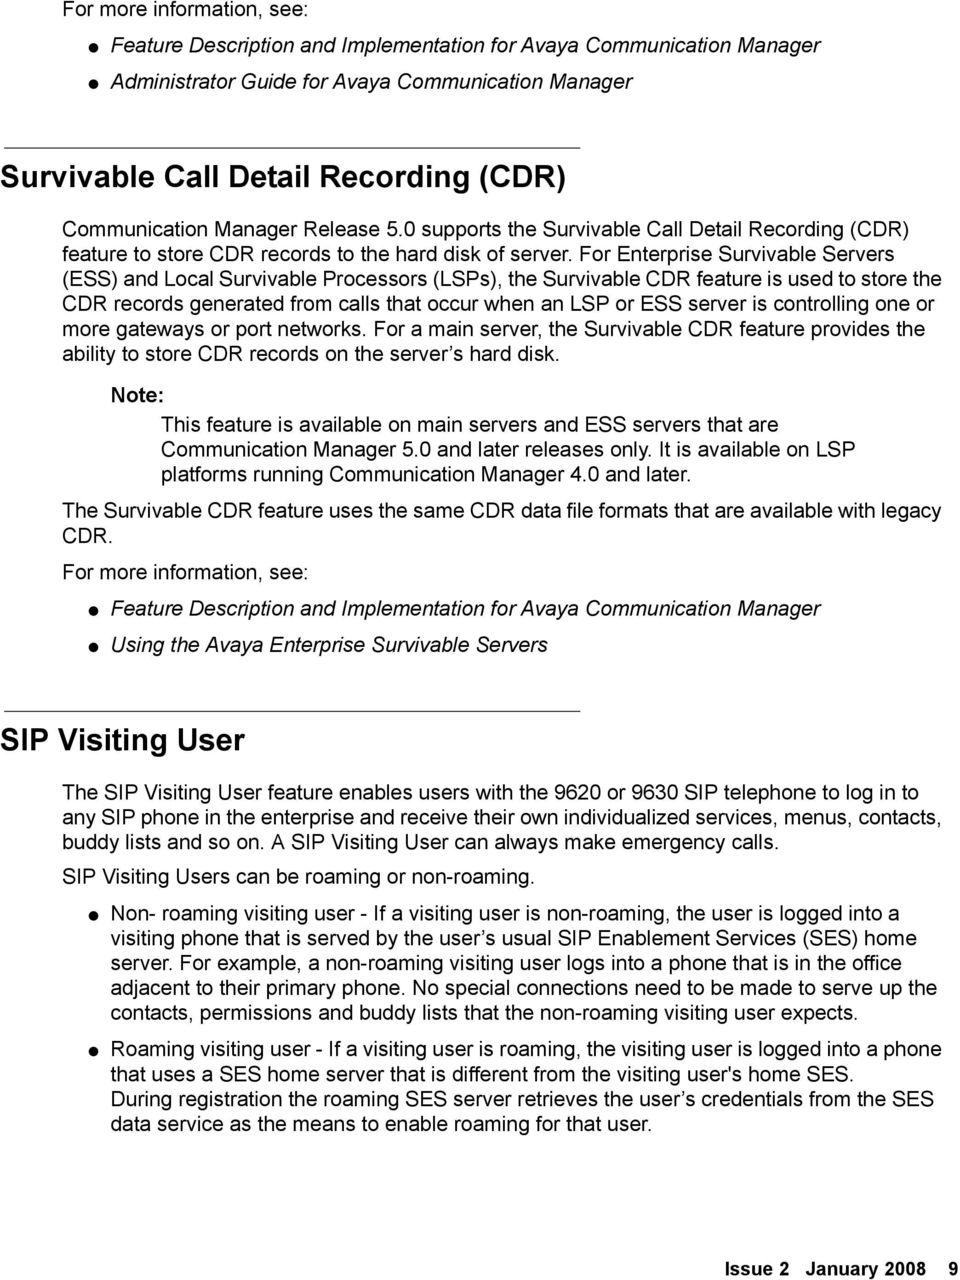 For Enterprise Survivable Servers (ESS) and Local Survivable Processors (LSPs), the Survivable CDR feature is used to store the CDR records generated from calls that occur when an LSP or ESS server